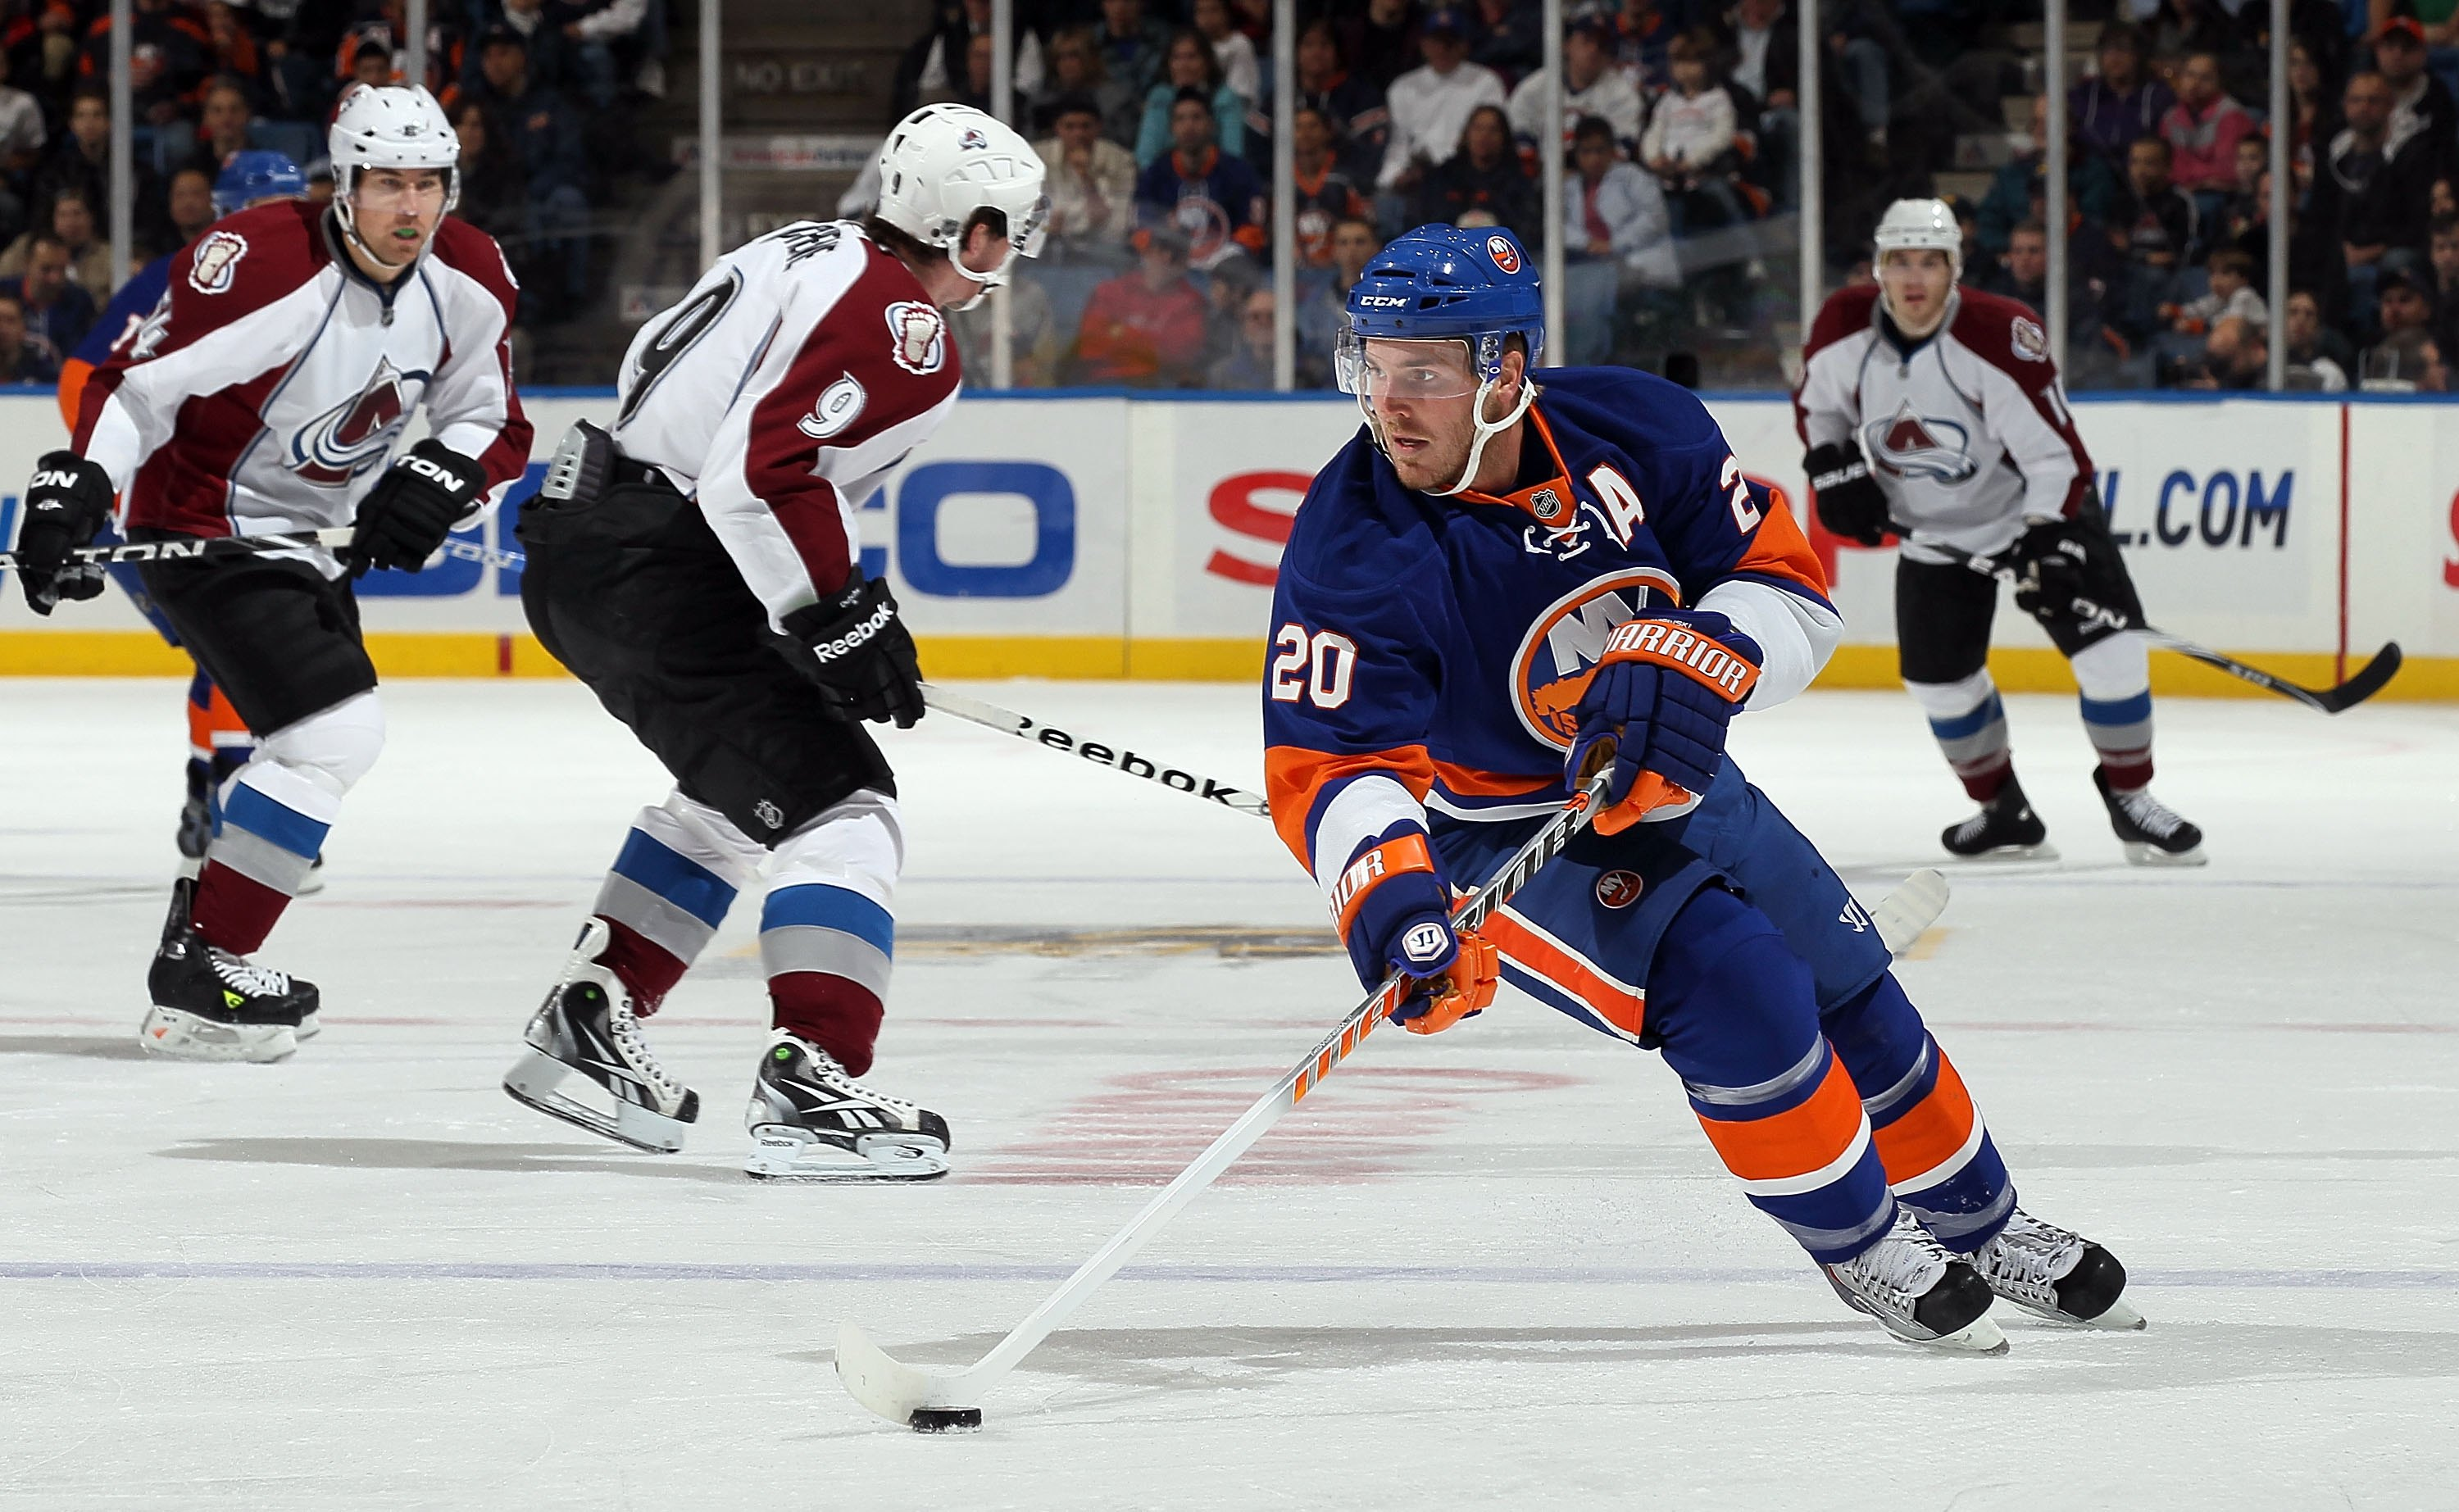 UNIONDALE, NY - OCTOBER 16:  James Wisniewski #20 of the New York Islanders skates against the Colorado Avalanche on October 16, 2010 at Nassau Coliseum in Uniondale, New York. The Isles defeated the Avalanche 5-2.  (Photo by Jim McIsaac/Getty Images)